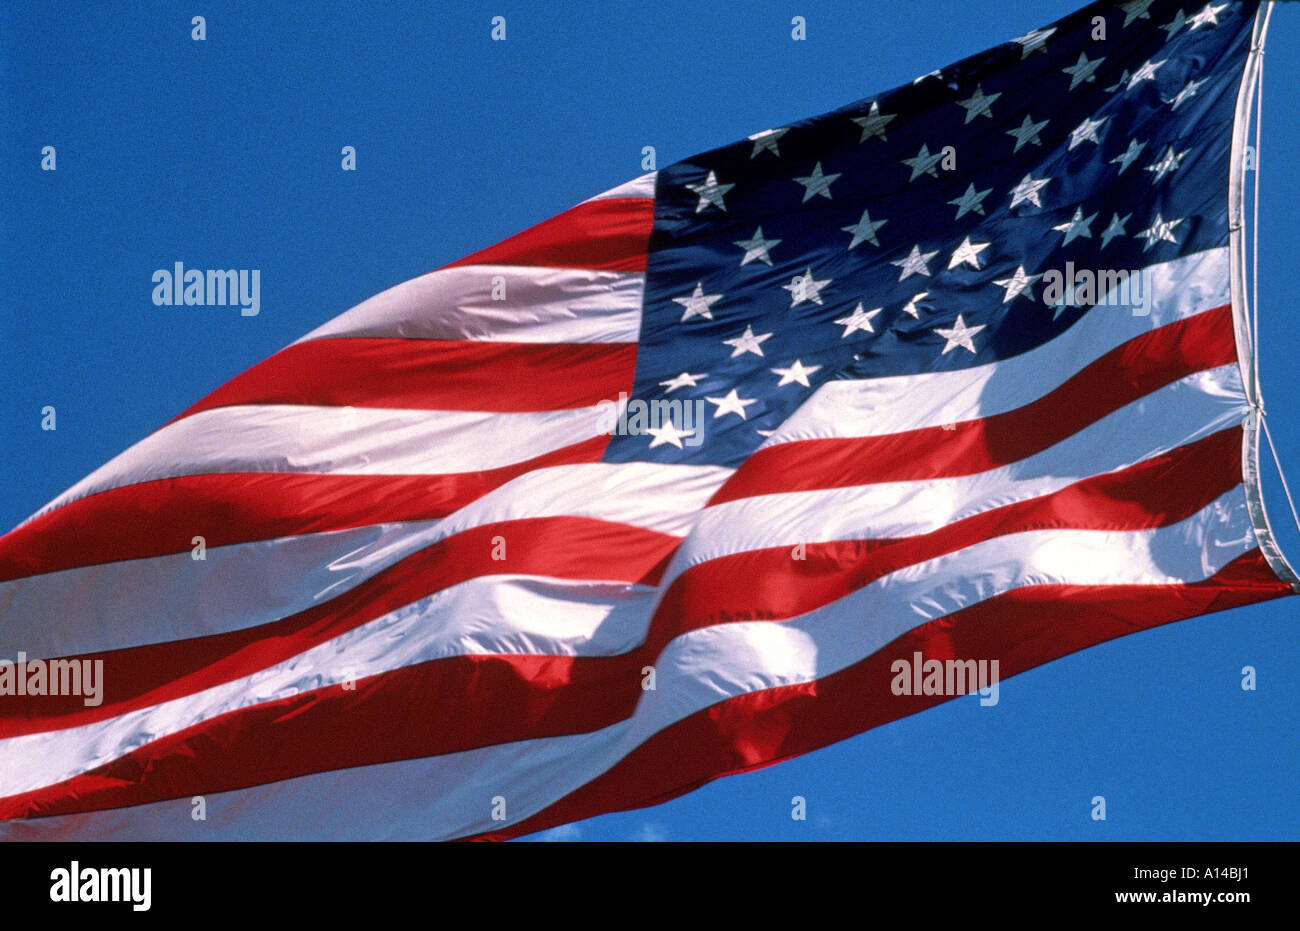 STARS AND STRIPES - Stock Image